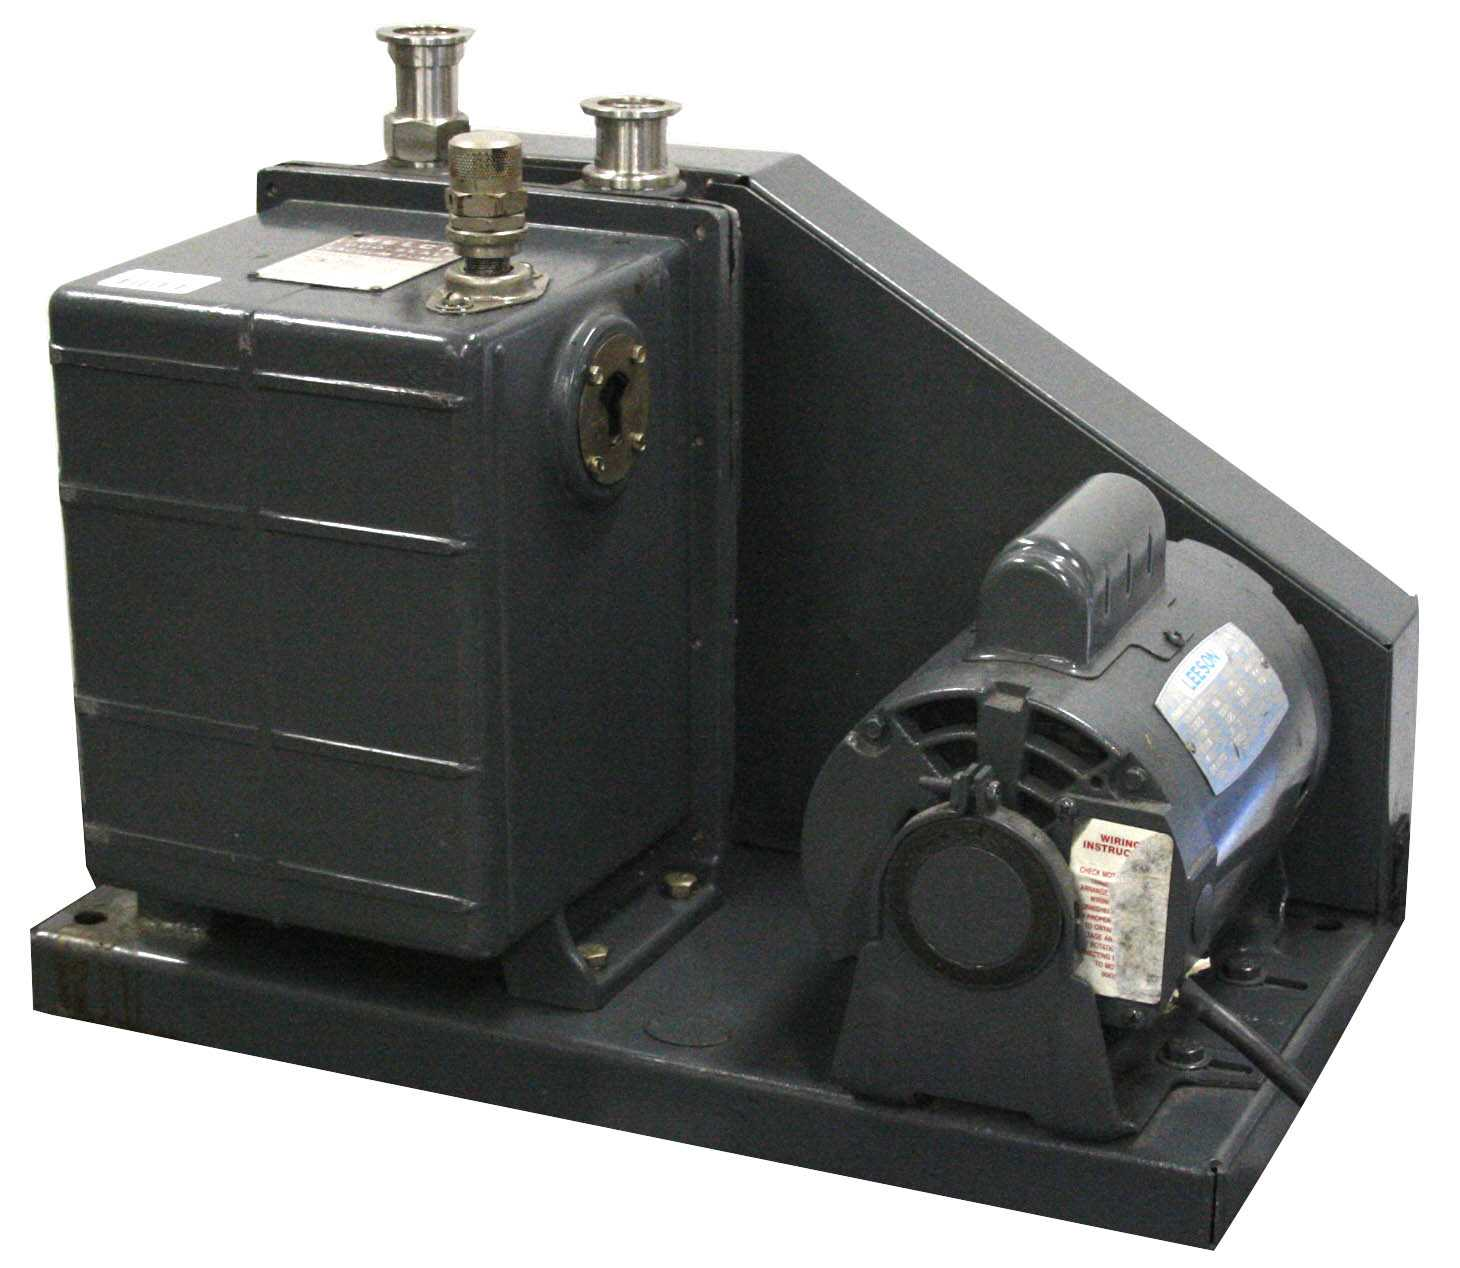 photo of a Used Welch 1402 Vacuum Pump sold by Hitechtrader.com